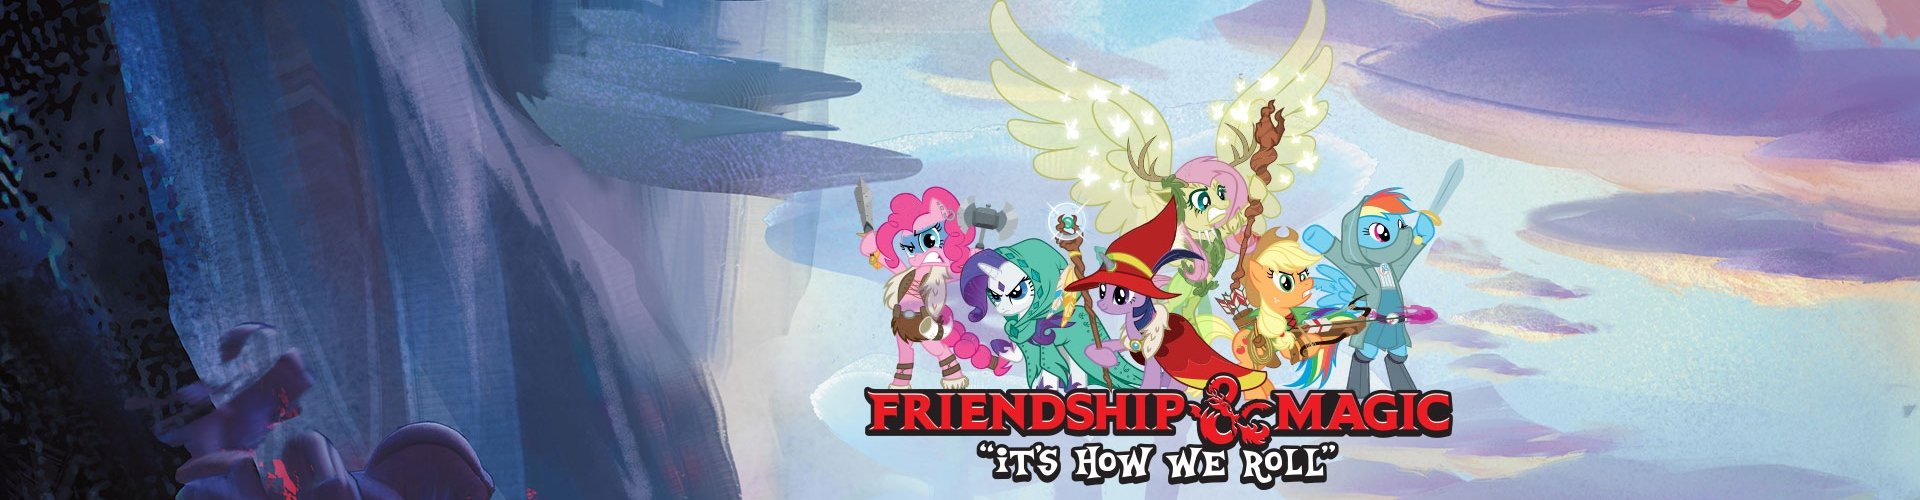 Dungeons & Dragons teams up with My Little Pony